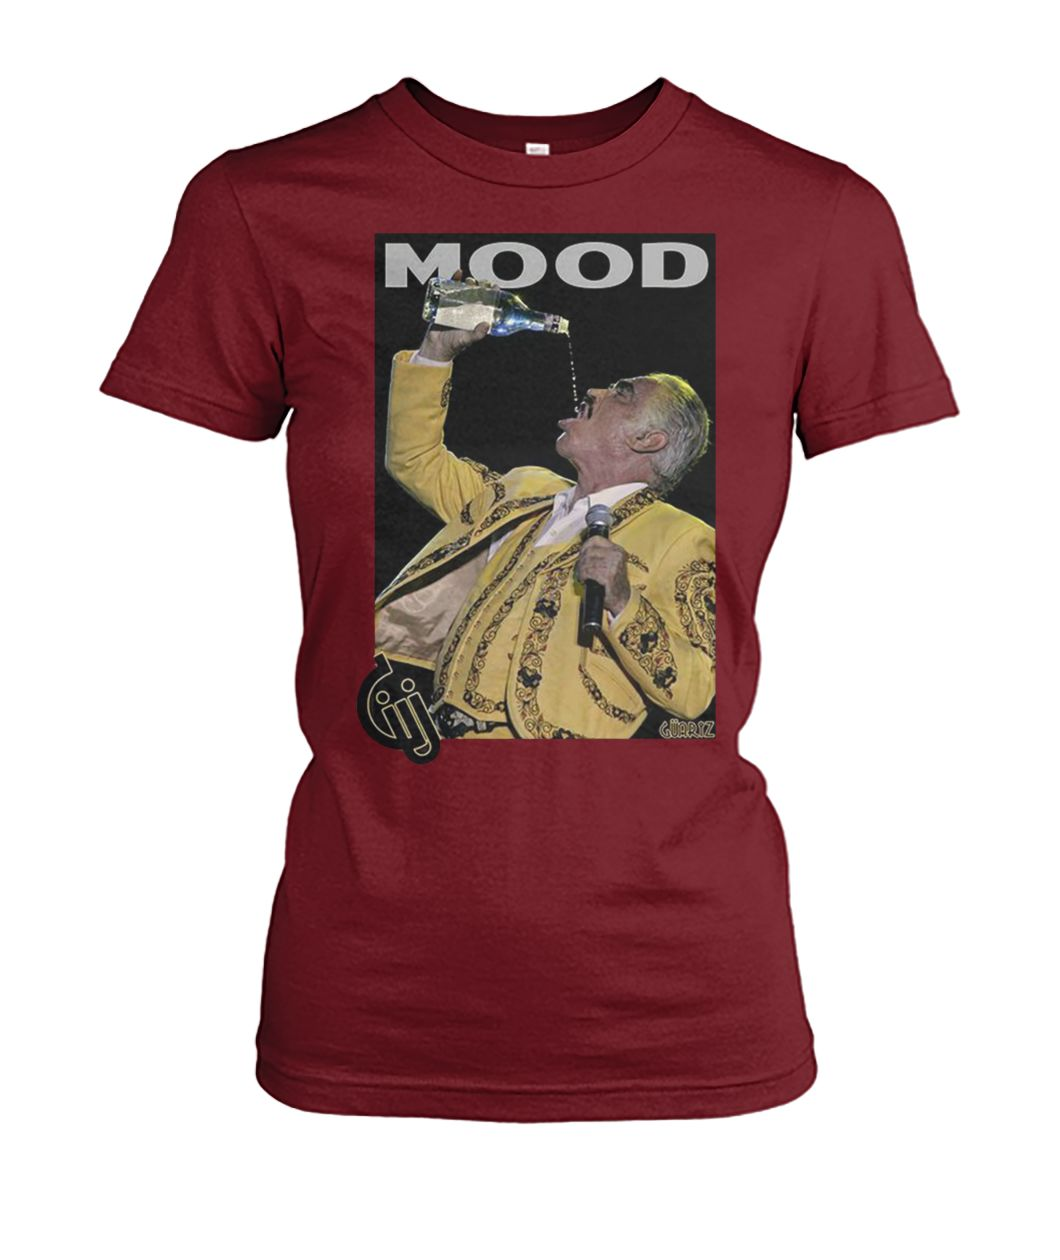 Vicente fernández drinking and singing mood women's crew tee